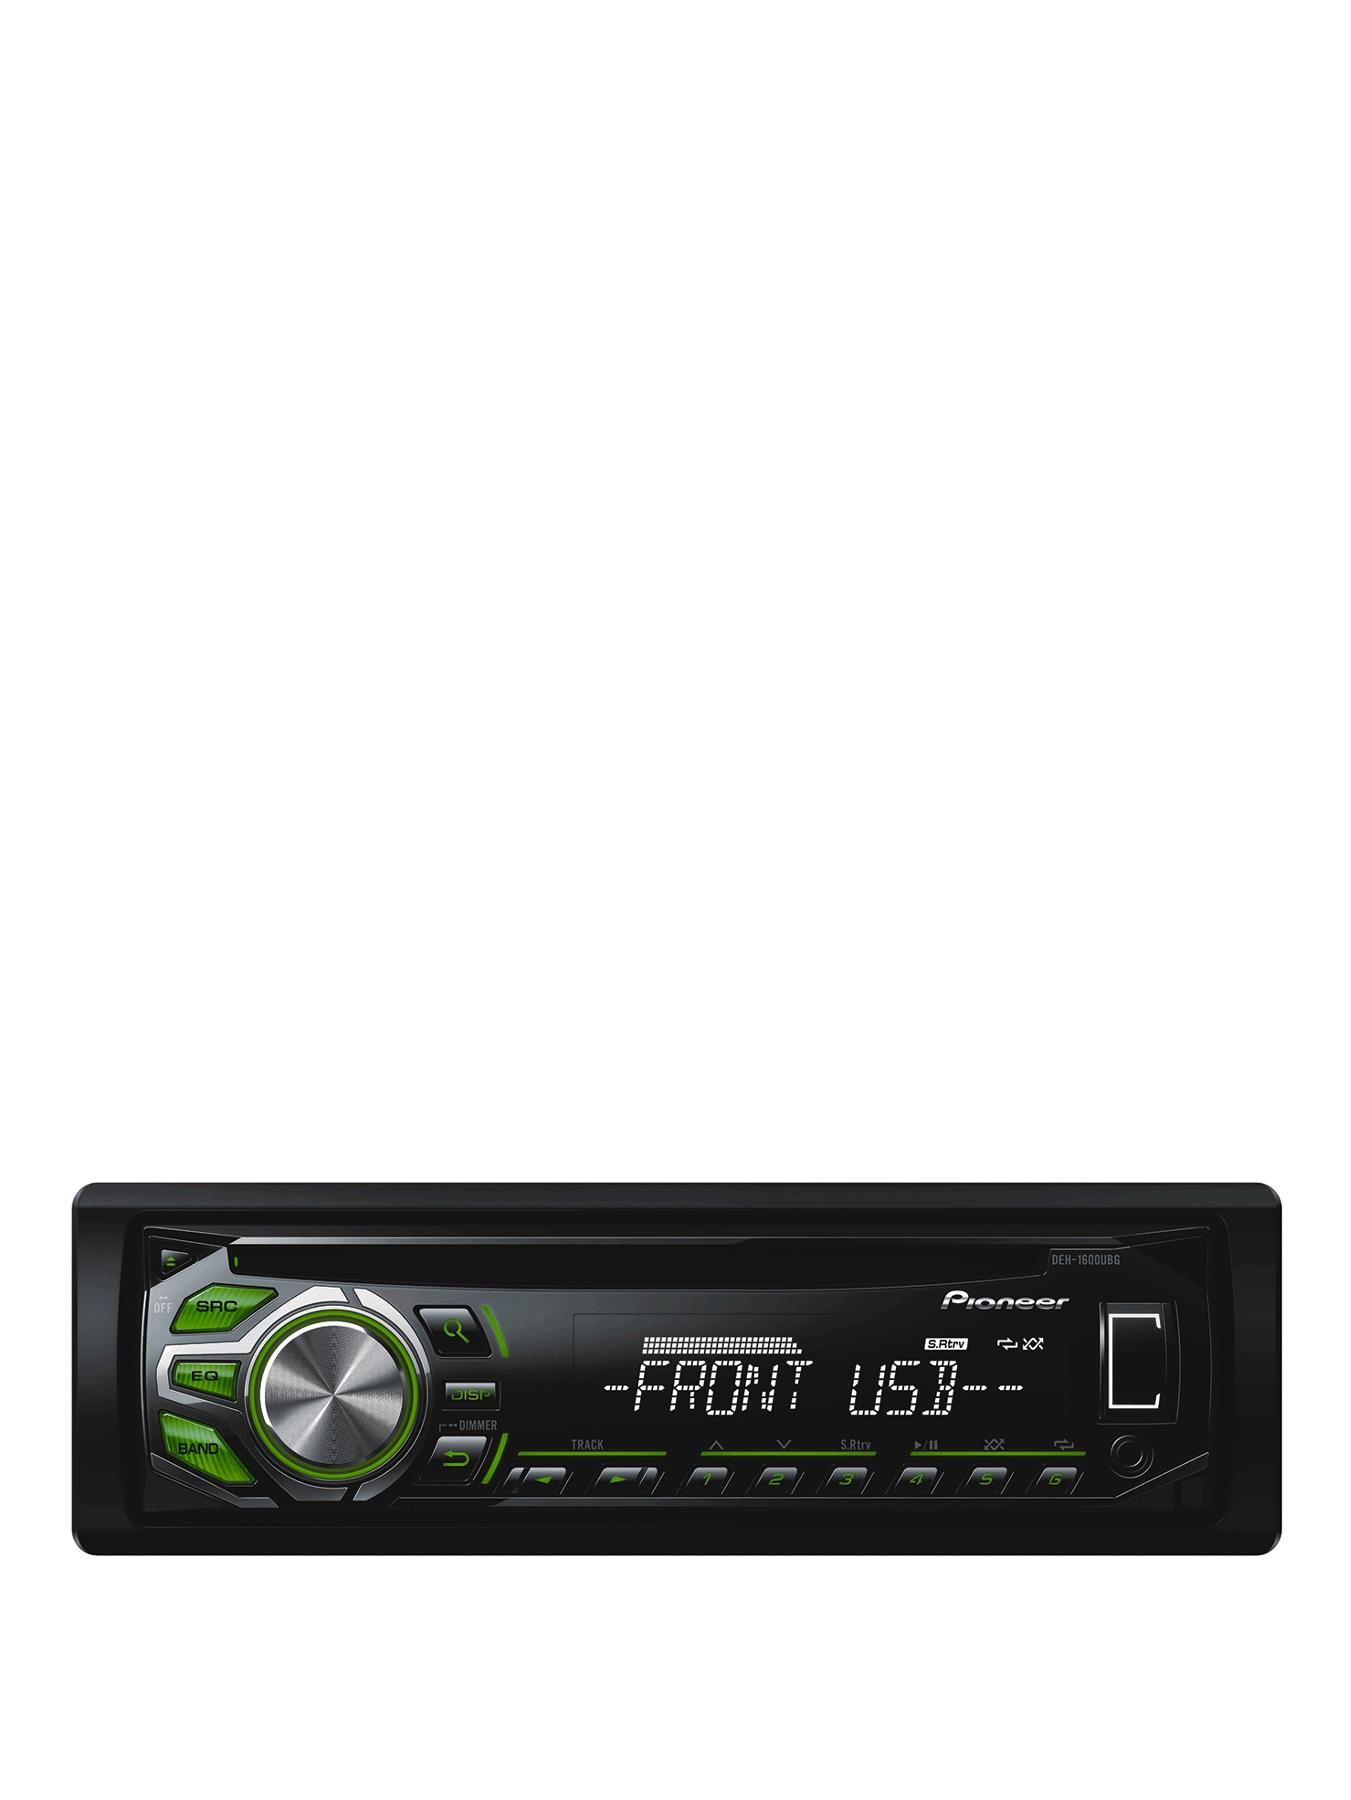 DEH-1600UBG CD Tuner MP3 USB Green and White Display